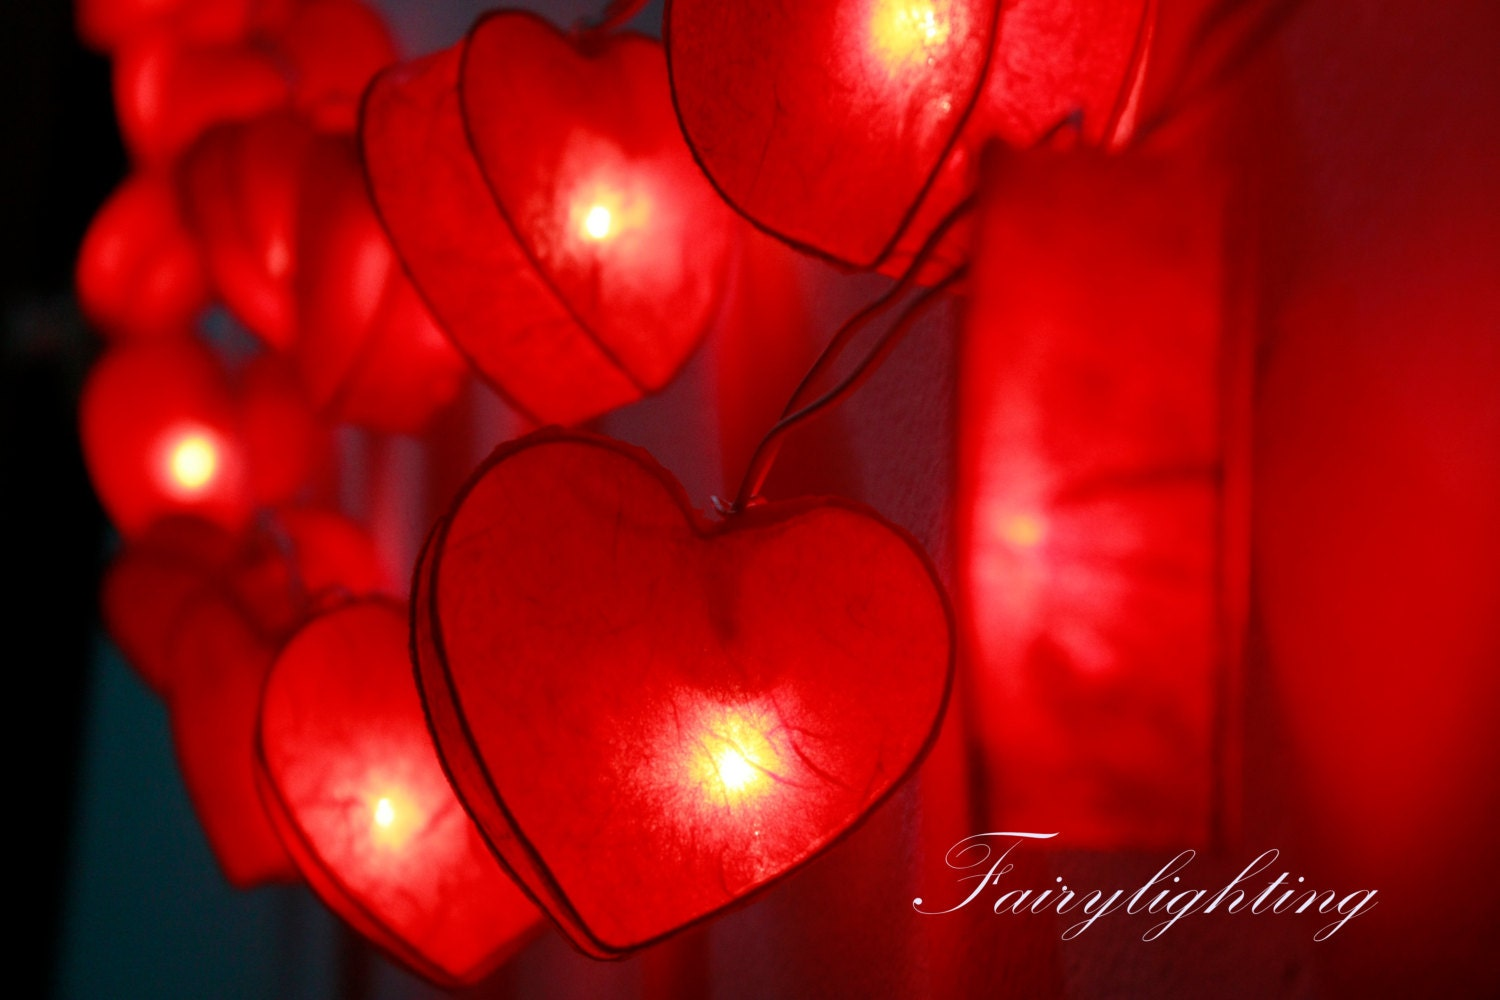 String Lights-20 Romantic Heart Red Color Paper by fairylighting